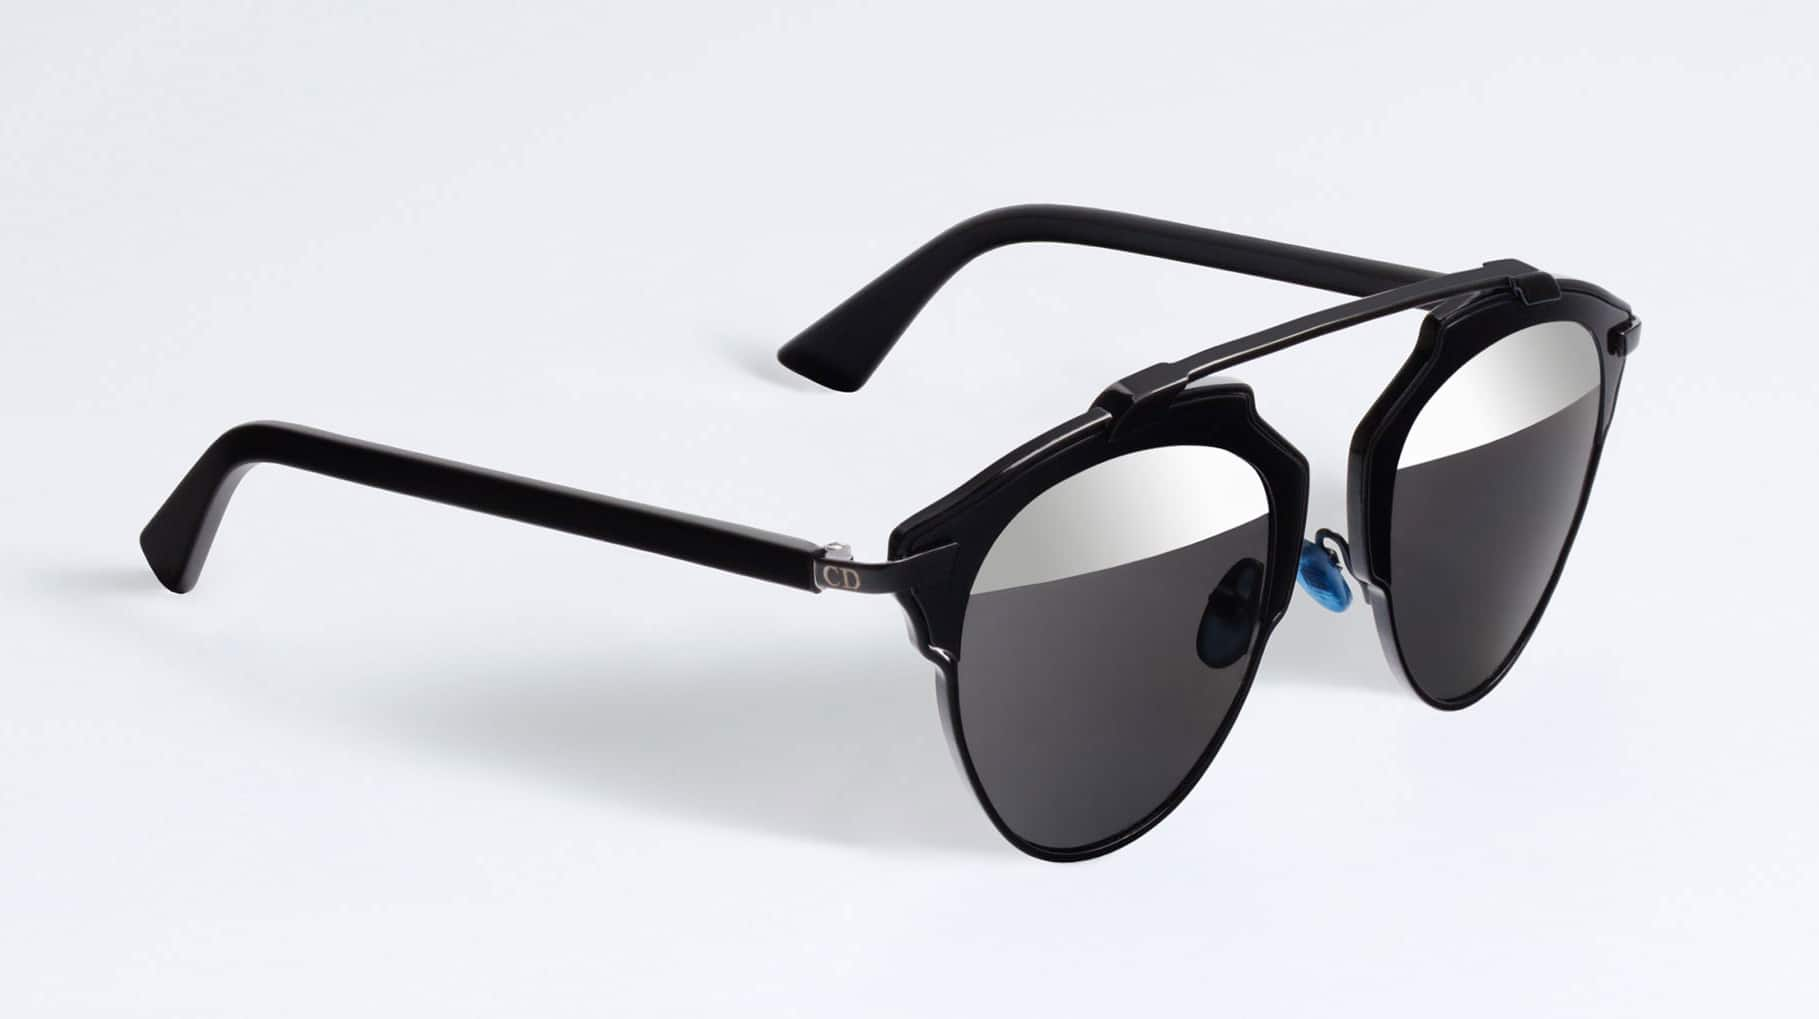 7d717812dab56 Dior So Real Mirror Sunglasses Reference Guide